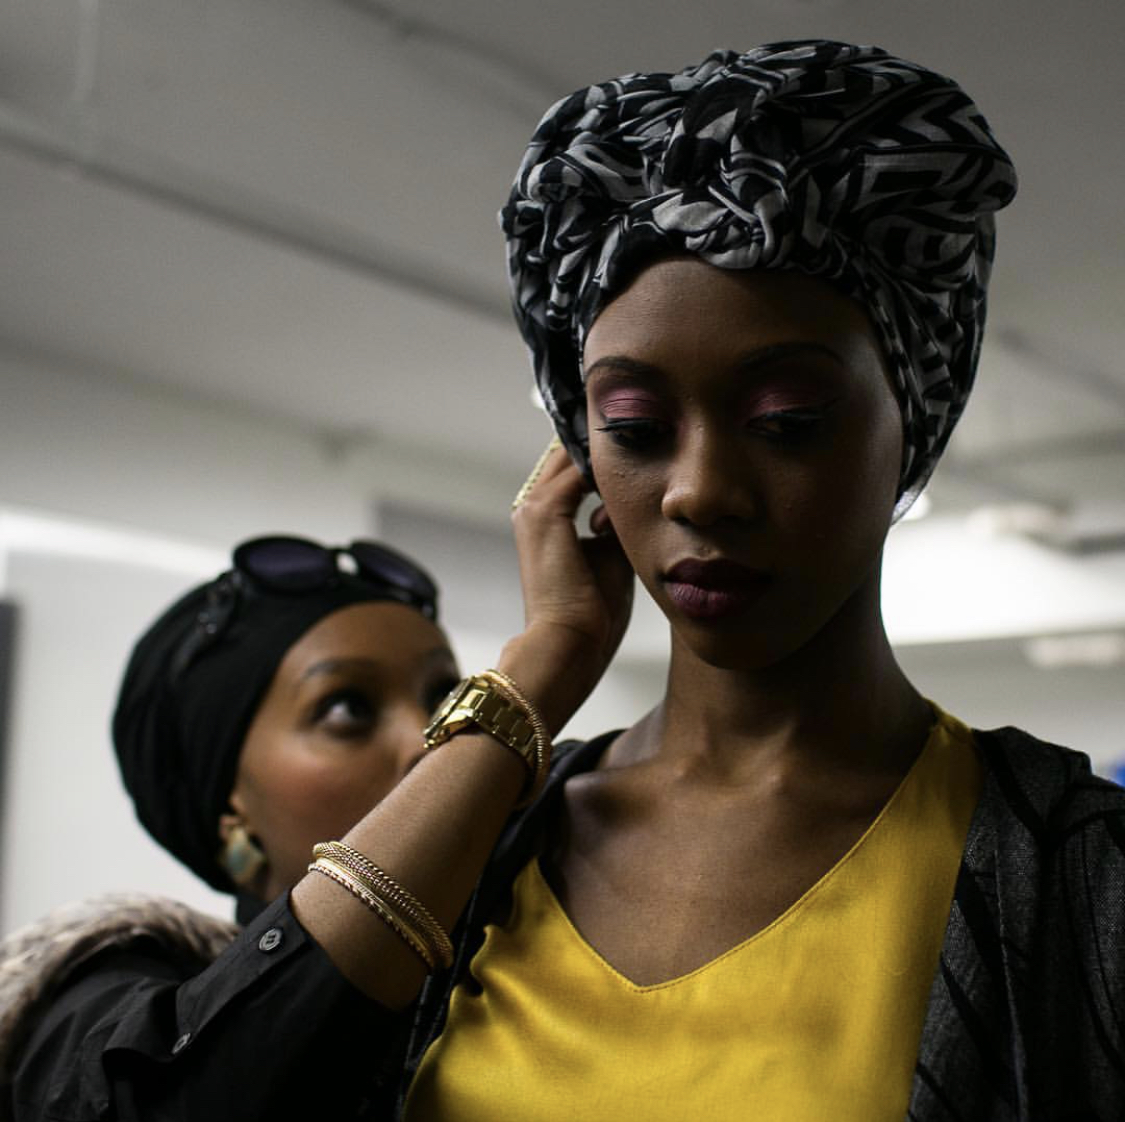 A Muslim clothing designer adjusts the turban on a model before the start of the Haute and Modesty Show during DC Fashion Week in Washington. The show, which was part of DC Fashion Week for its fourth season, featured modest fashion from various local and international clothing designers. Pic courtesy: Zoshia Minto.